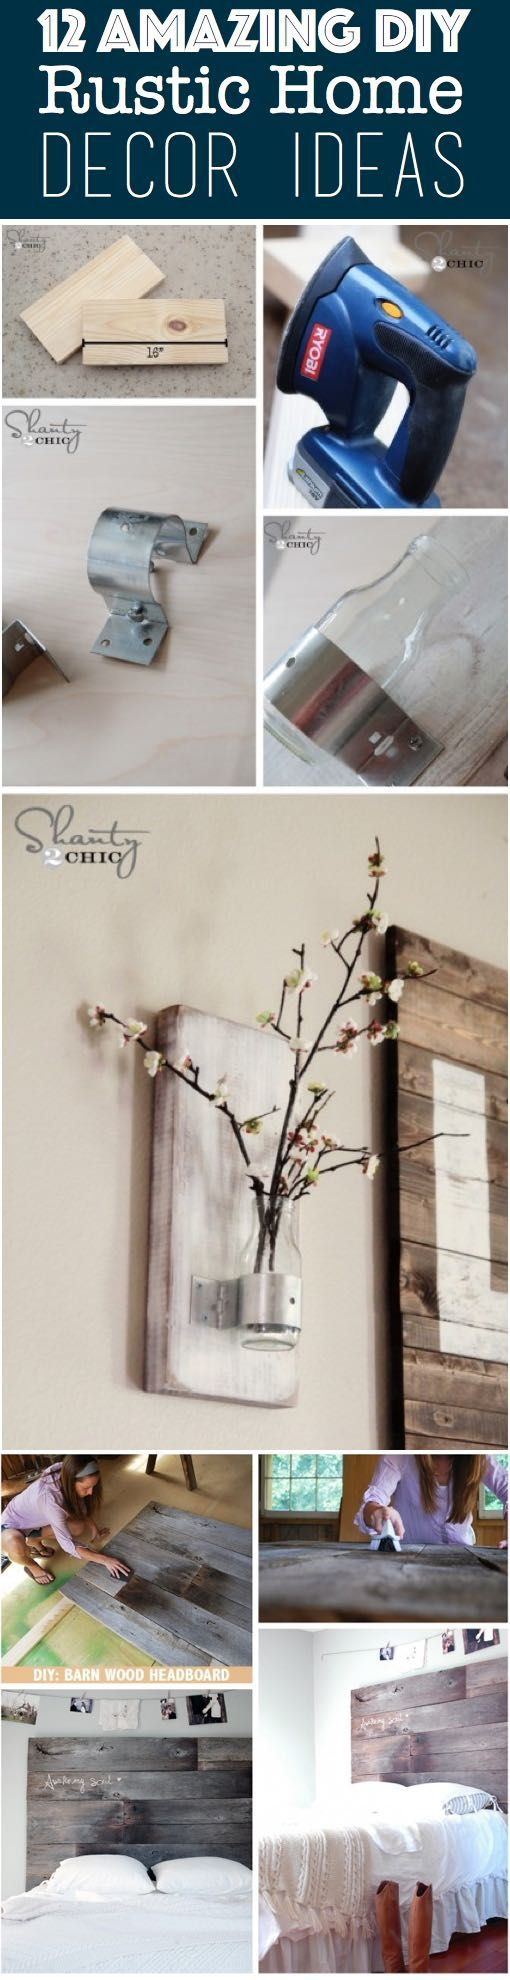 12+Amazing+DIY+Rustic+Home+Decor+Ideas DIY Home Decor